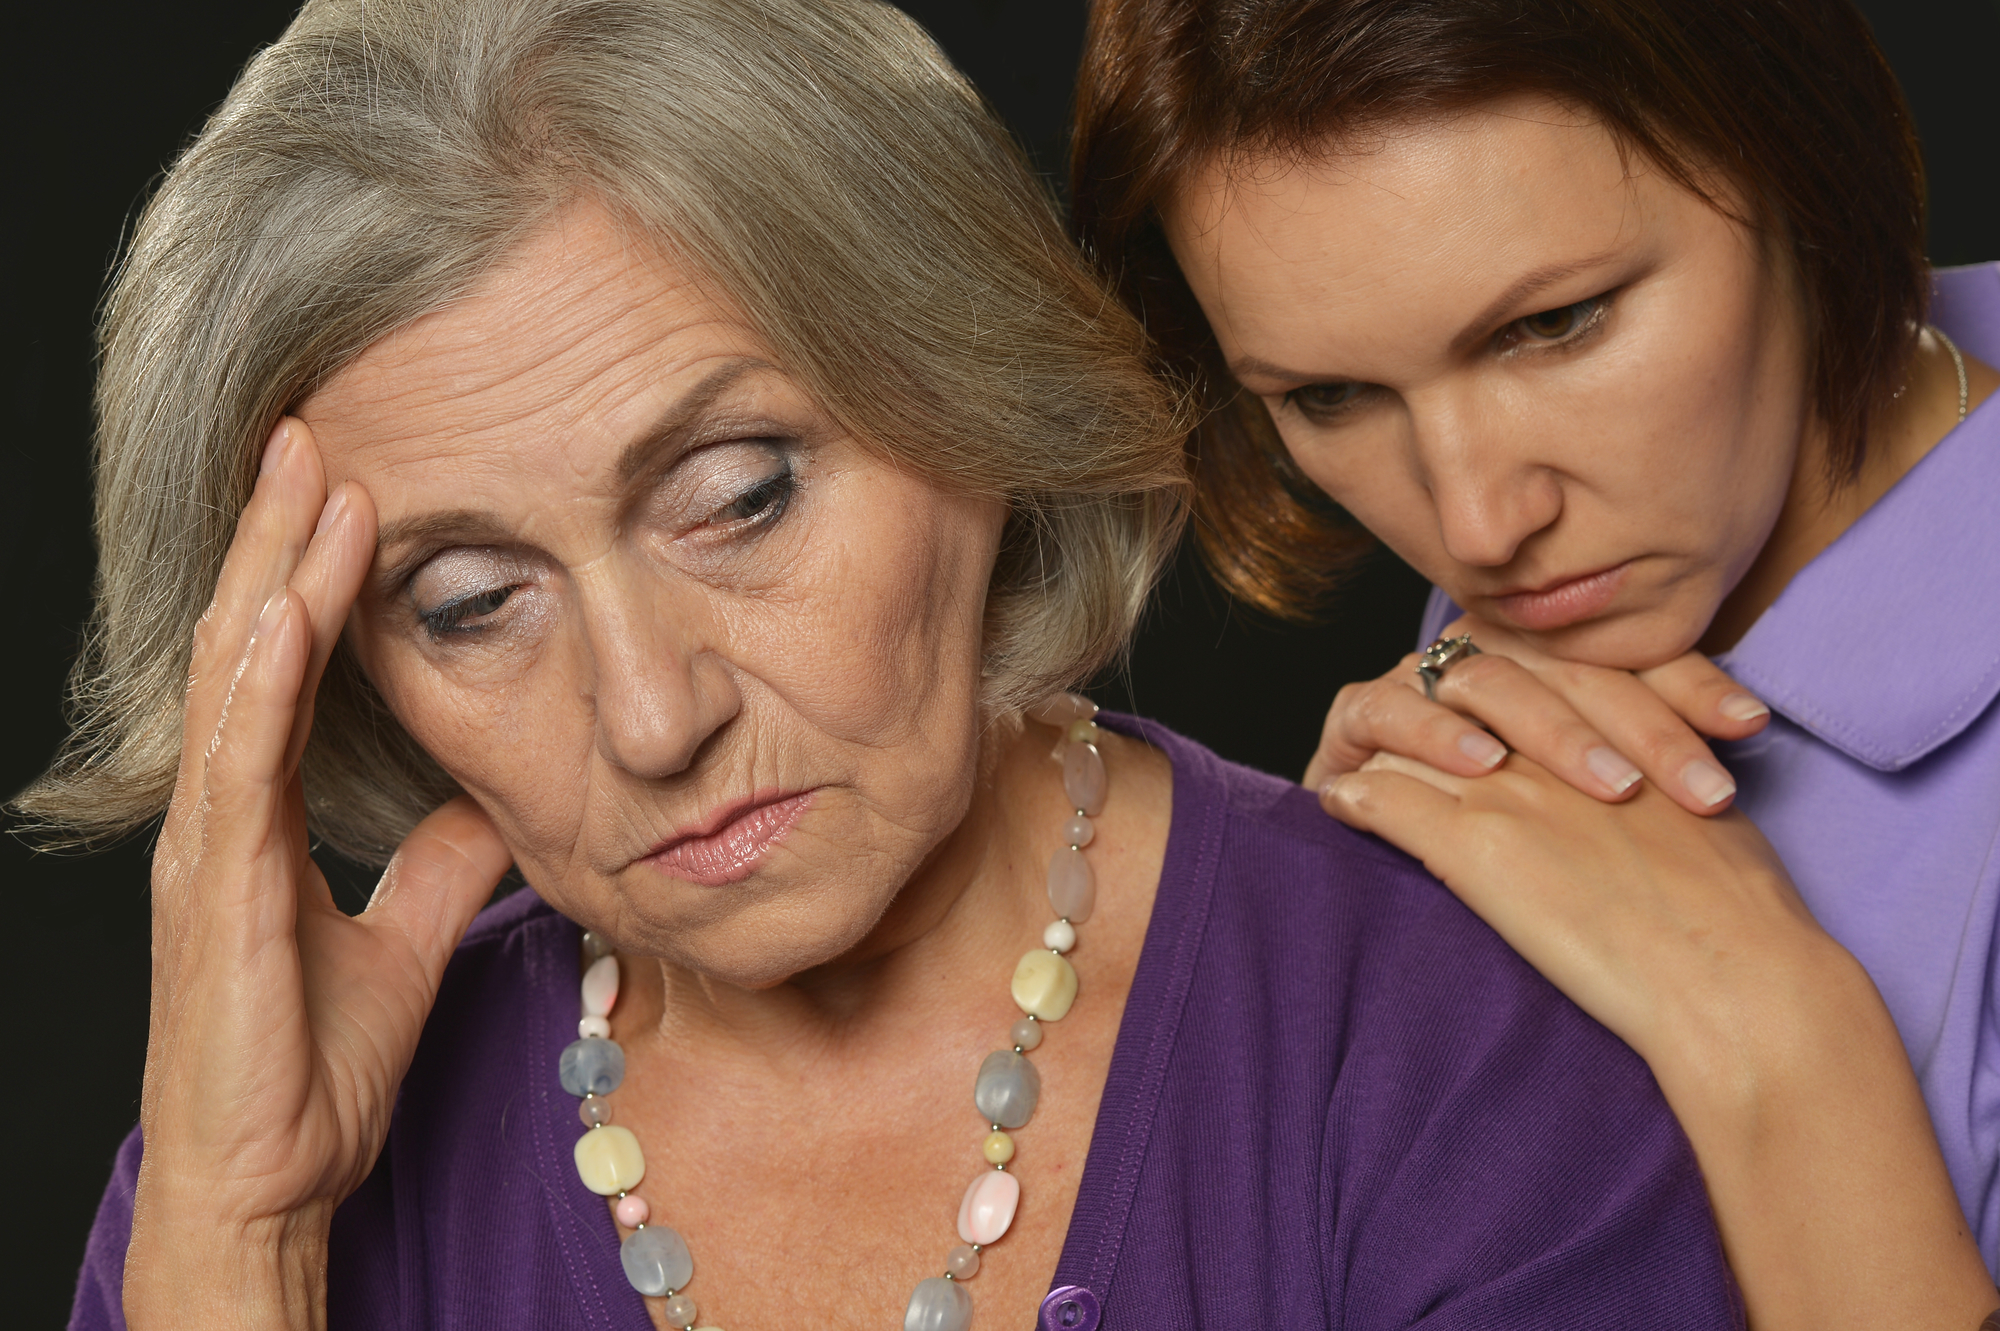 older mother upset and young woman leaning on her shoulder